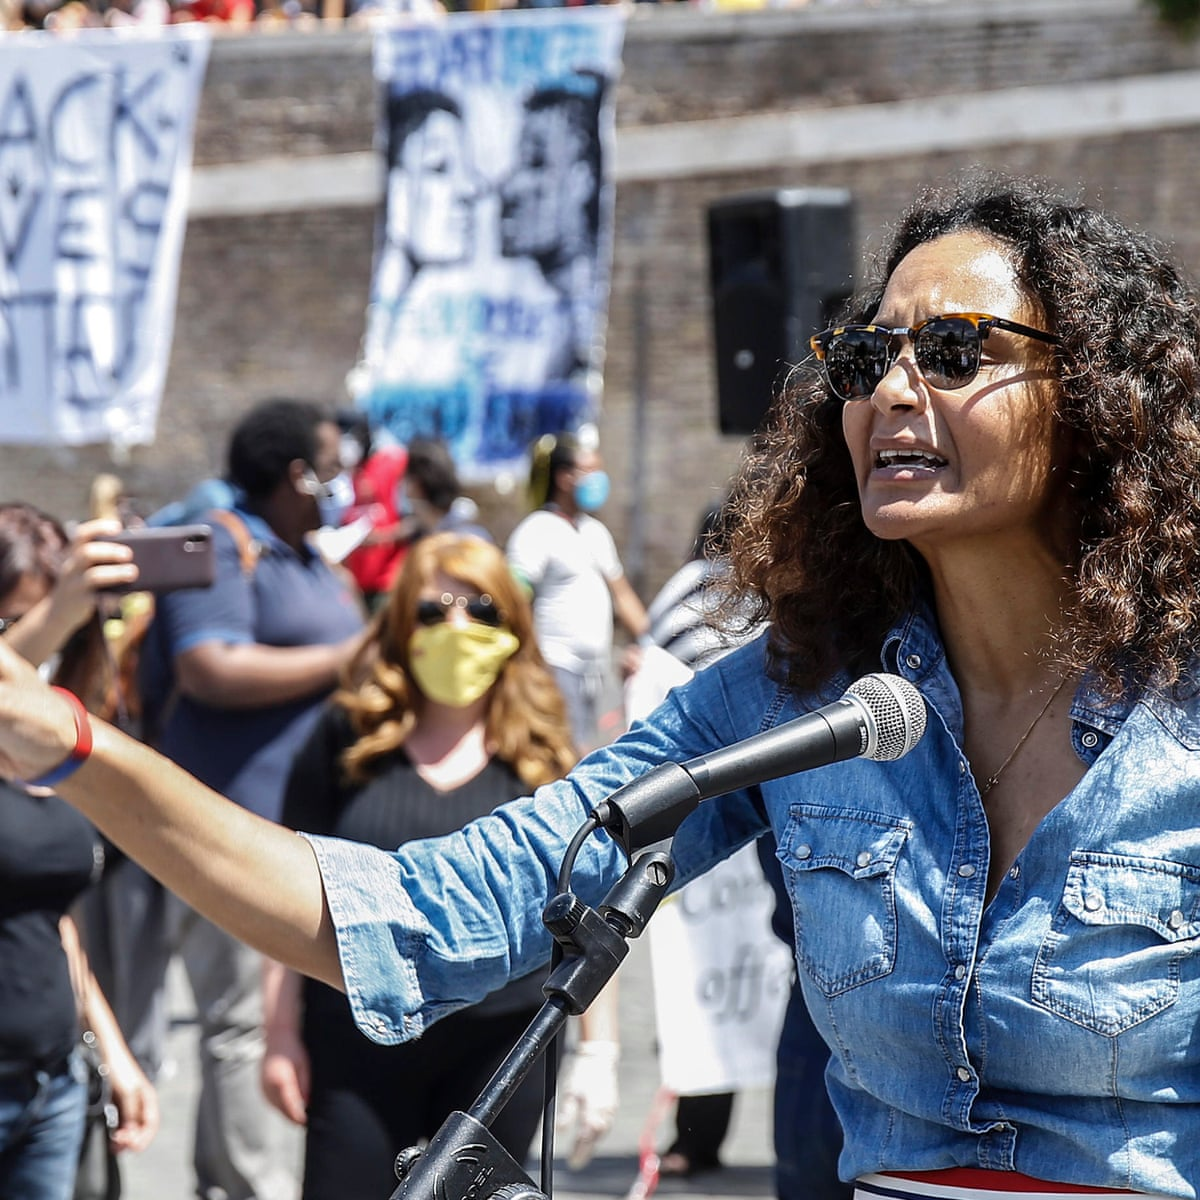 Italian Fashion Brands Urged To Tackle Racism Black Lives Matter Movement The Guardian